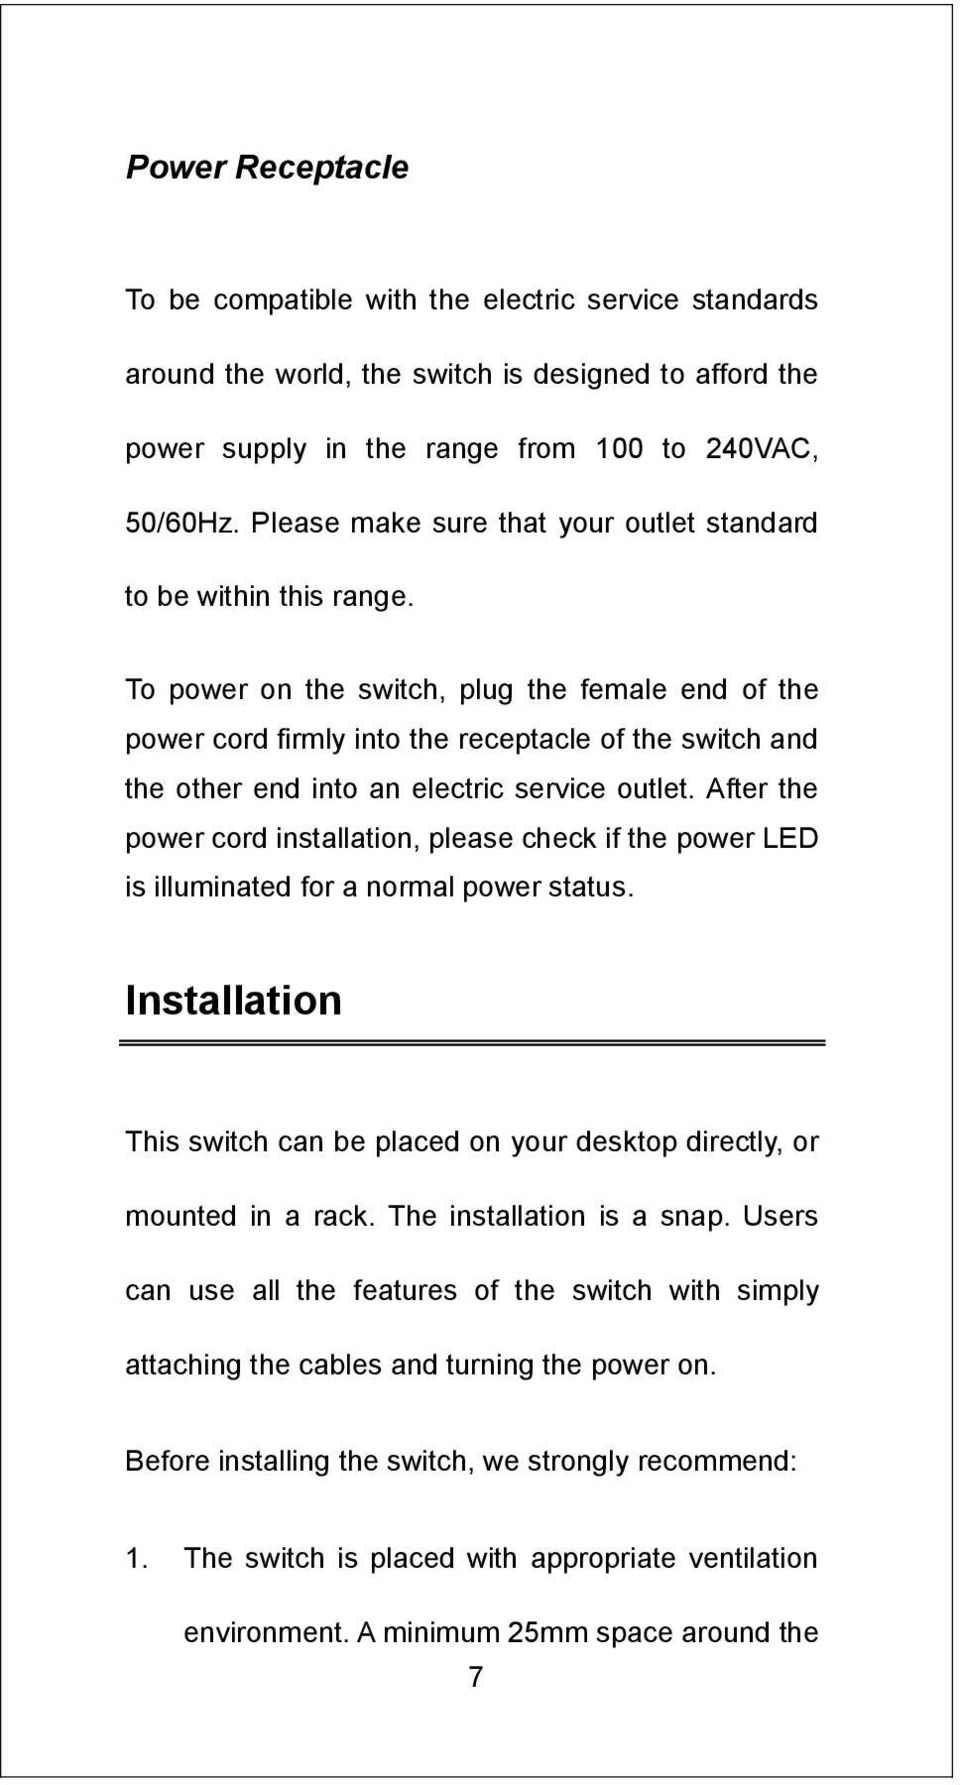 To power on the switch, plug the female end of the power cord firmly into the receptacle of the switch and the other end into an electric service outlet.